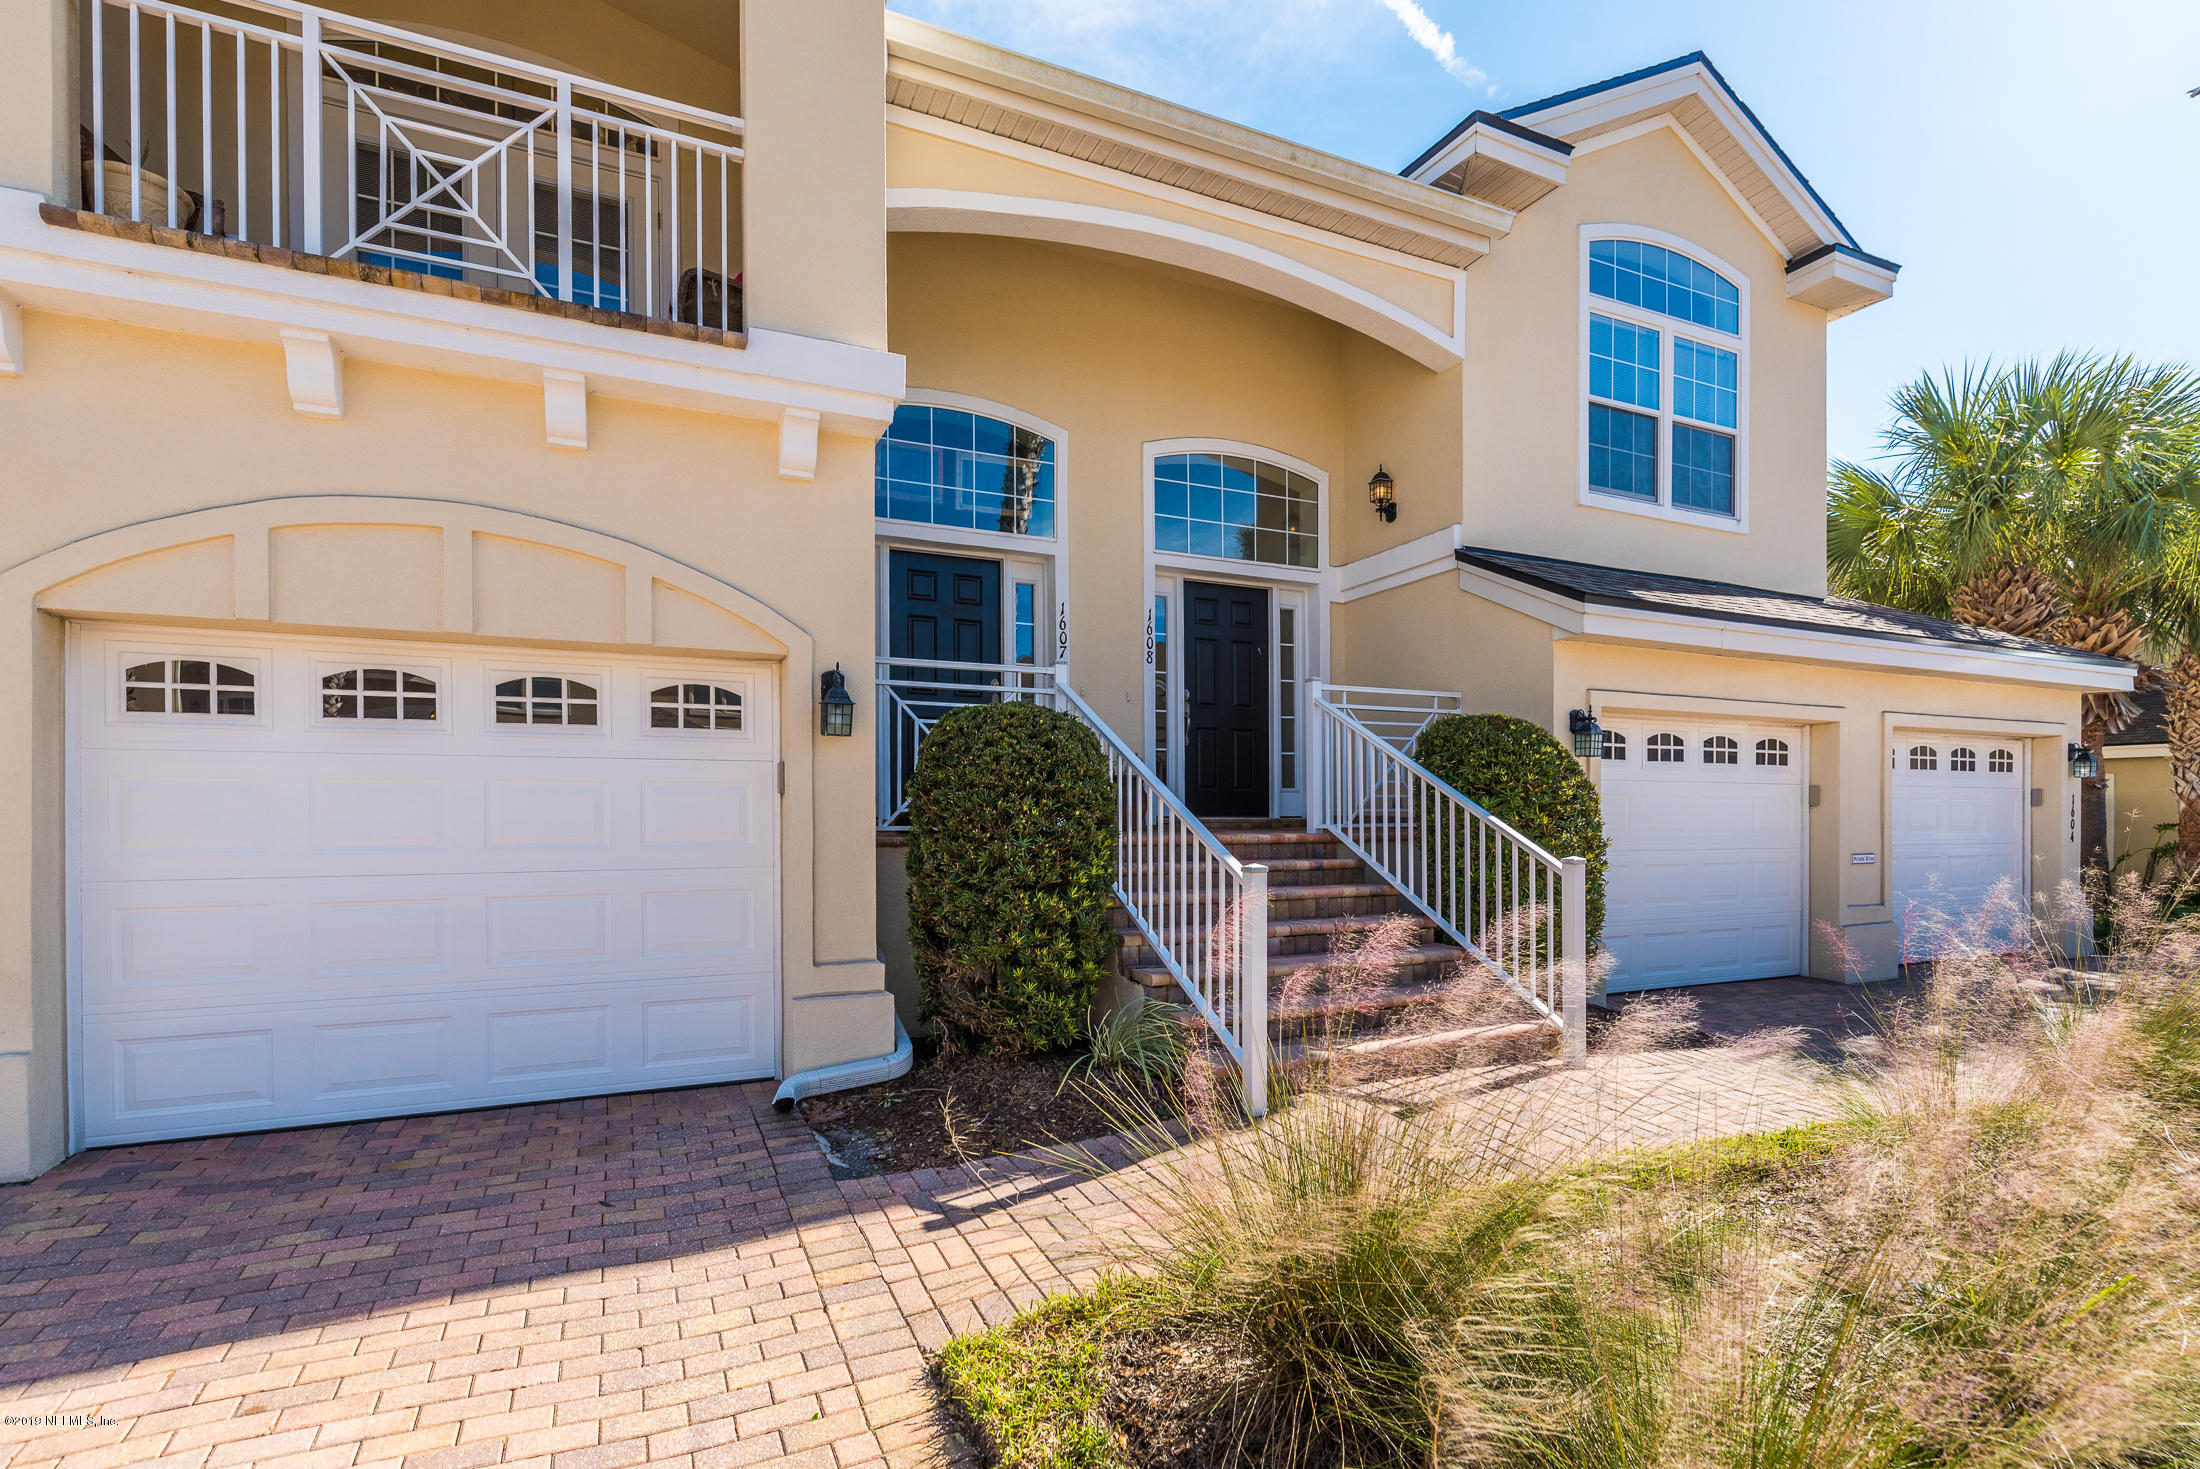 1608 MAKARIOS, ST AUGUSTINE BEACH, FLORIDA 32080, 3 Bedrooms Bedrooms, ,2 BathroomsBathrooms,Condo,For sale,MAKARIOS,975270